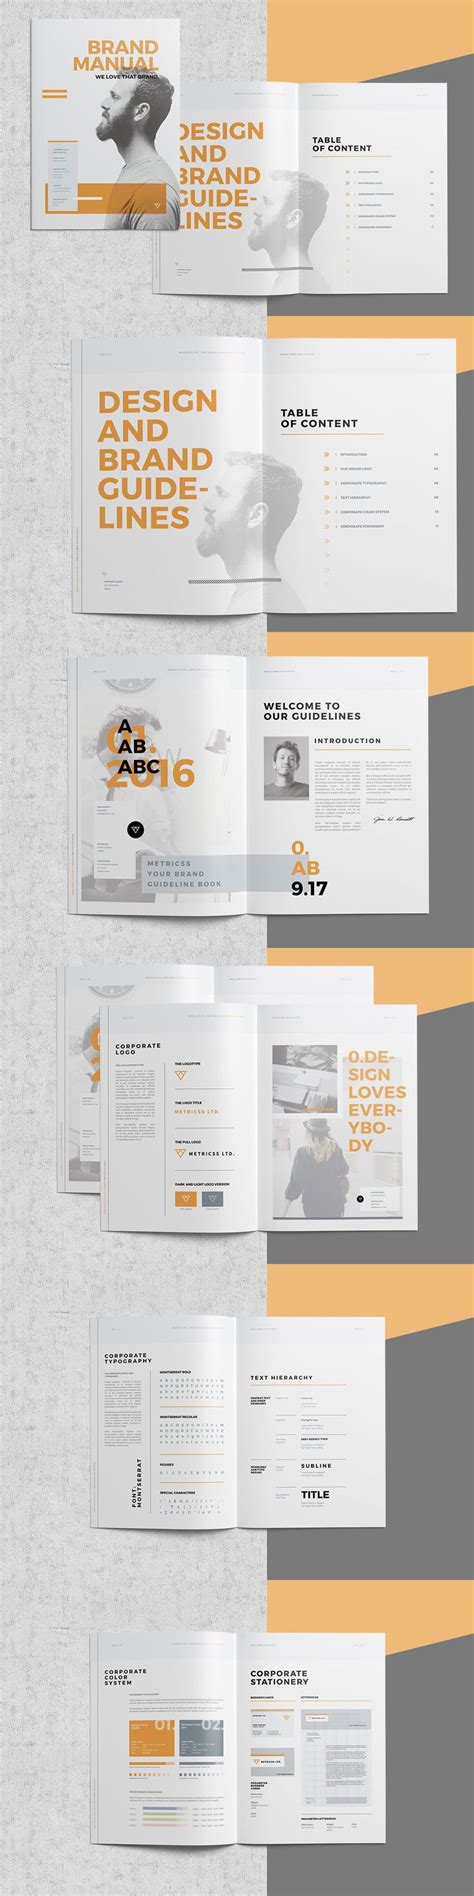 web design layout in indesign 12 best employee manual images on pinterest employee